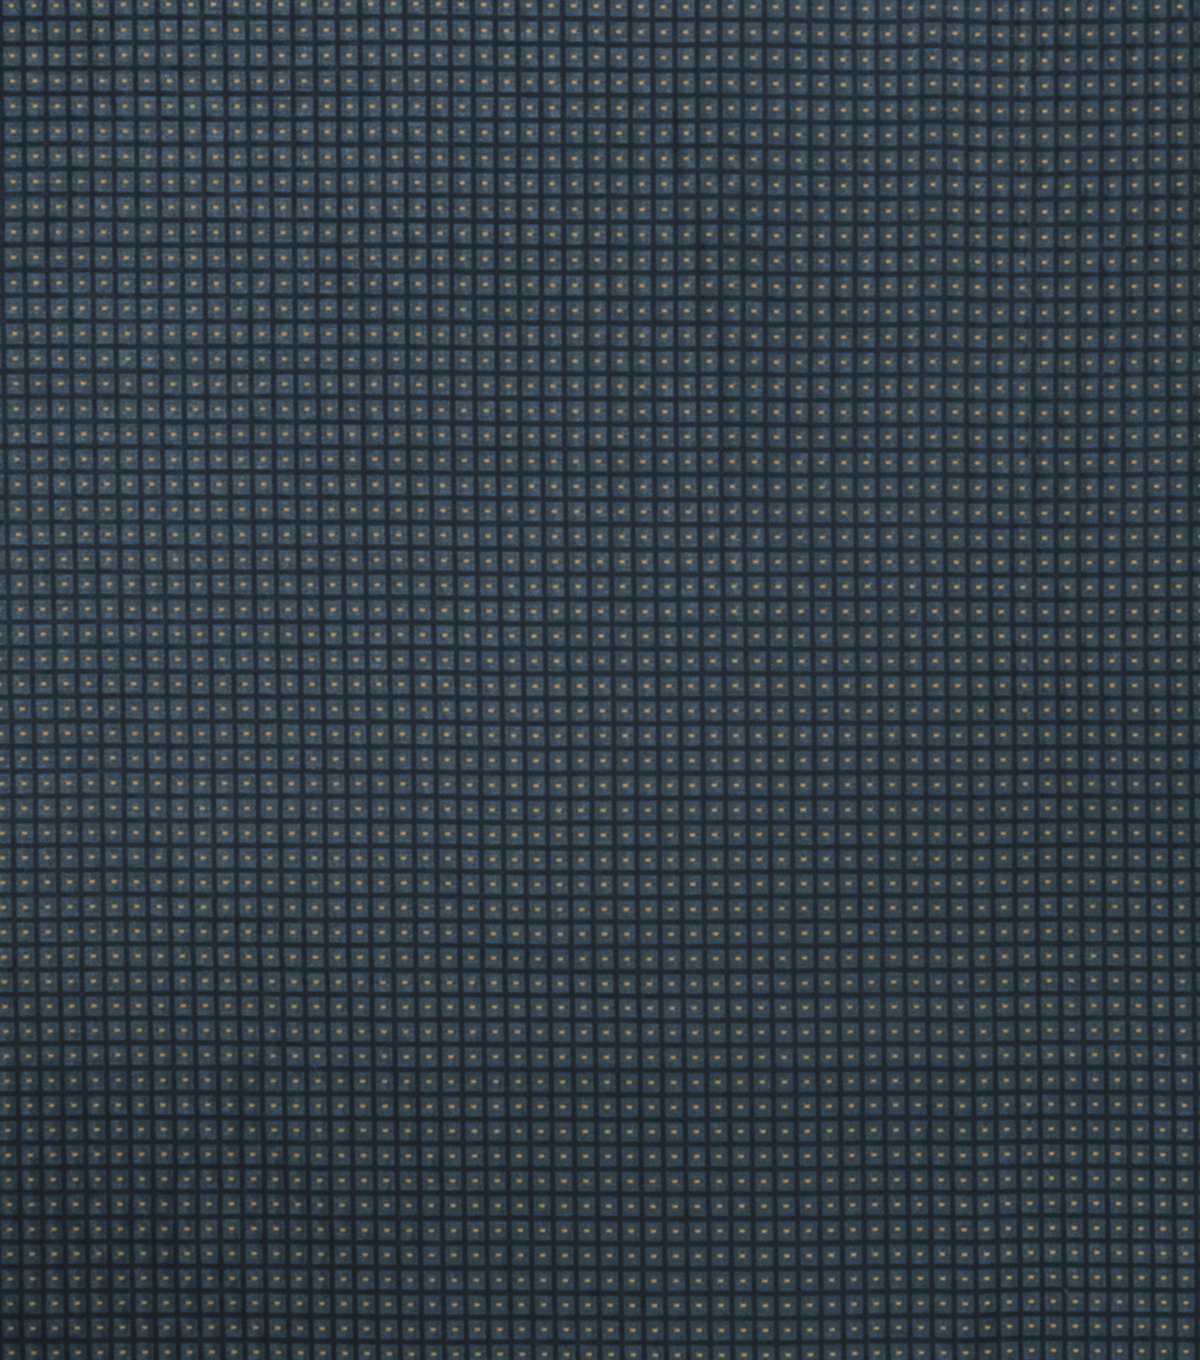 Home Decor 8\u0022x8\u0022 Fabric Swatch-Upholstery Fabric SMC Designs Talent Navy